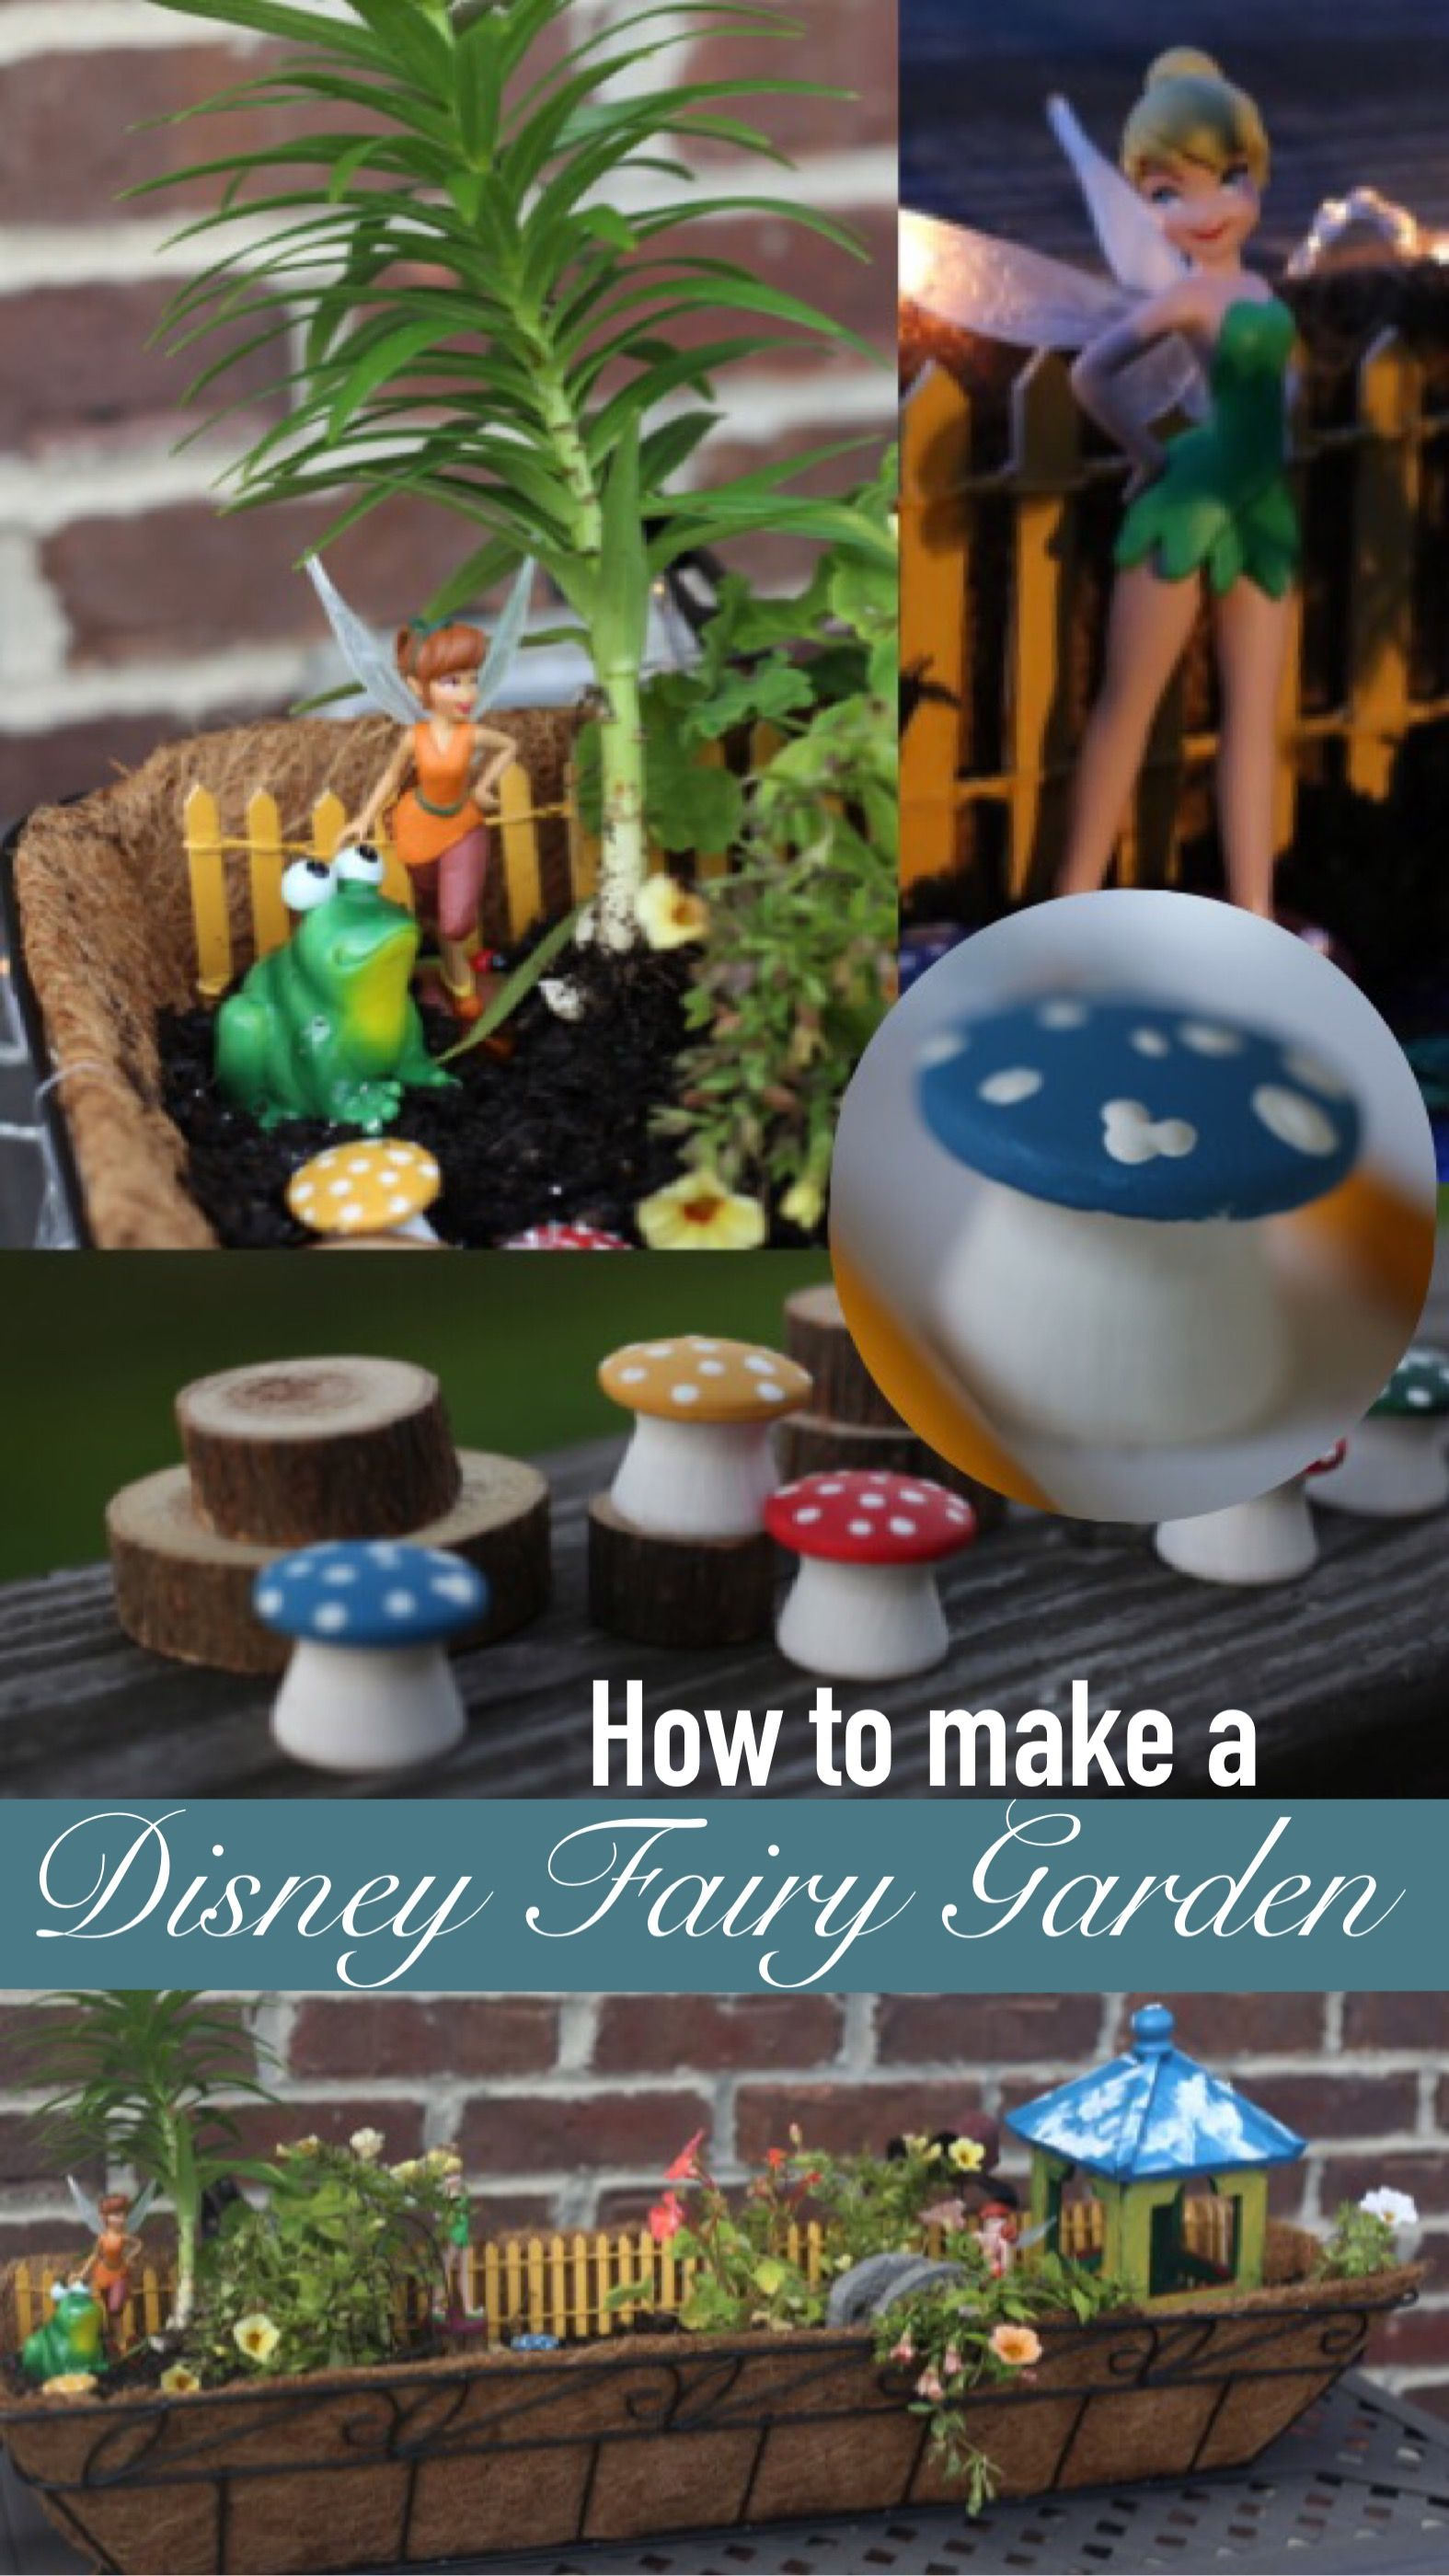 Considerable Ang Miniature Gardens At Higit Tips Ideas On How To Makeyour Very Own Disney Fairy Garden Make A Disney Fairy Garden Make Your Own Fairy Garden Door Make Your Own Fairy Garden Fence